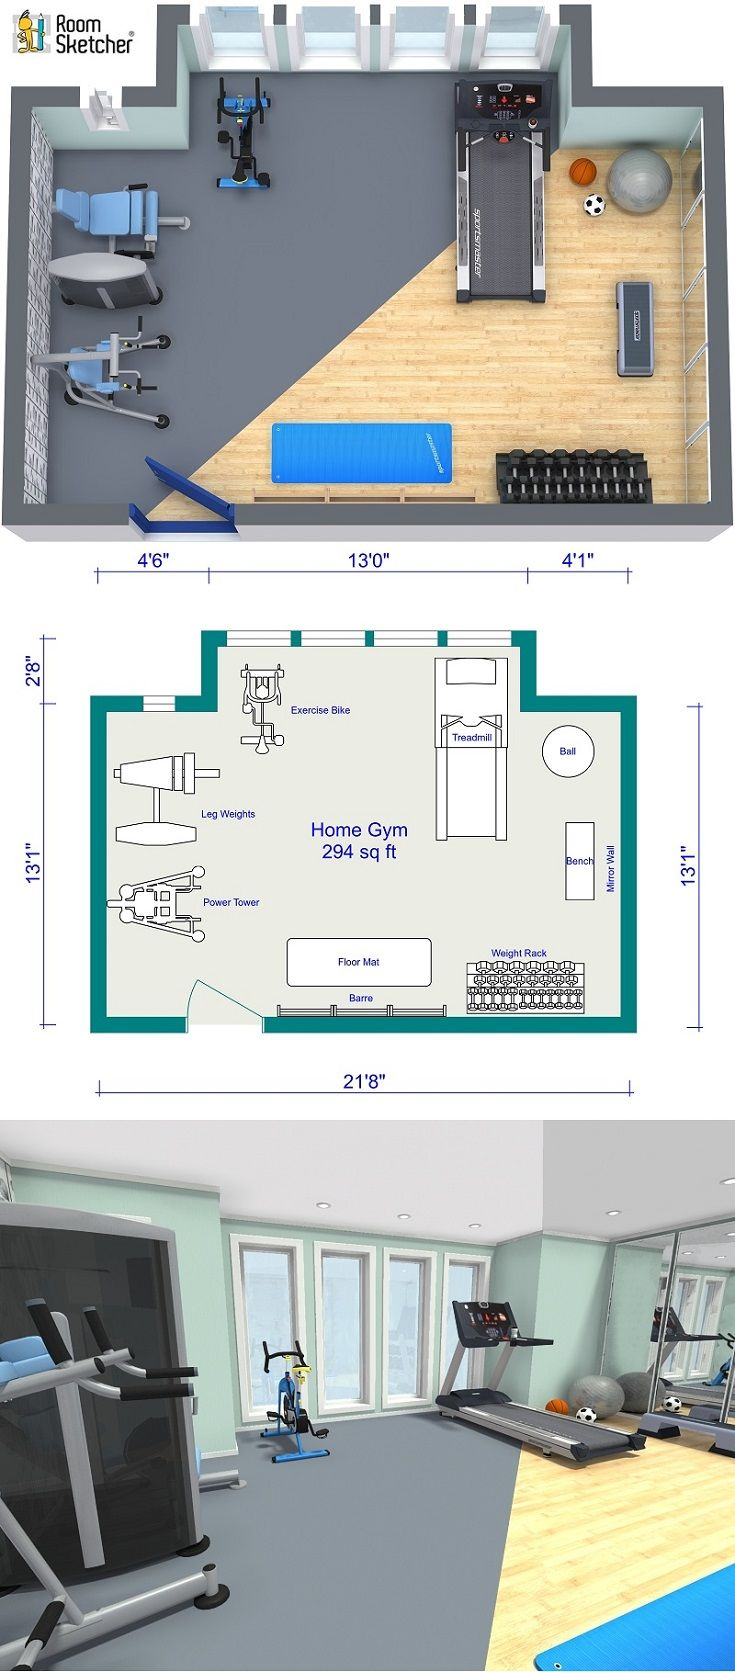 Home Gym Design: Design A Room With RoomSketcher In 2019